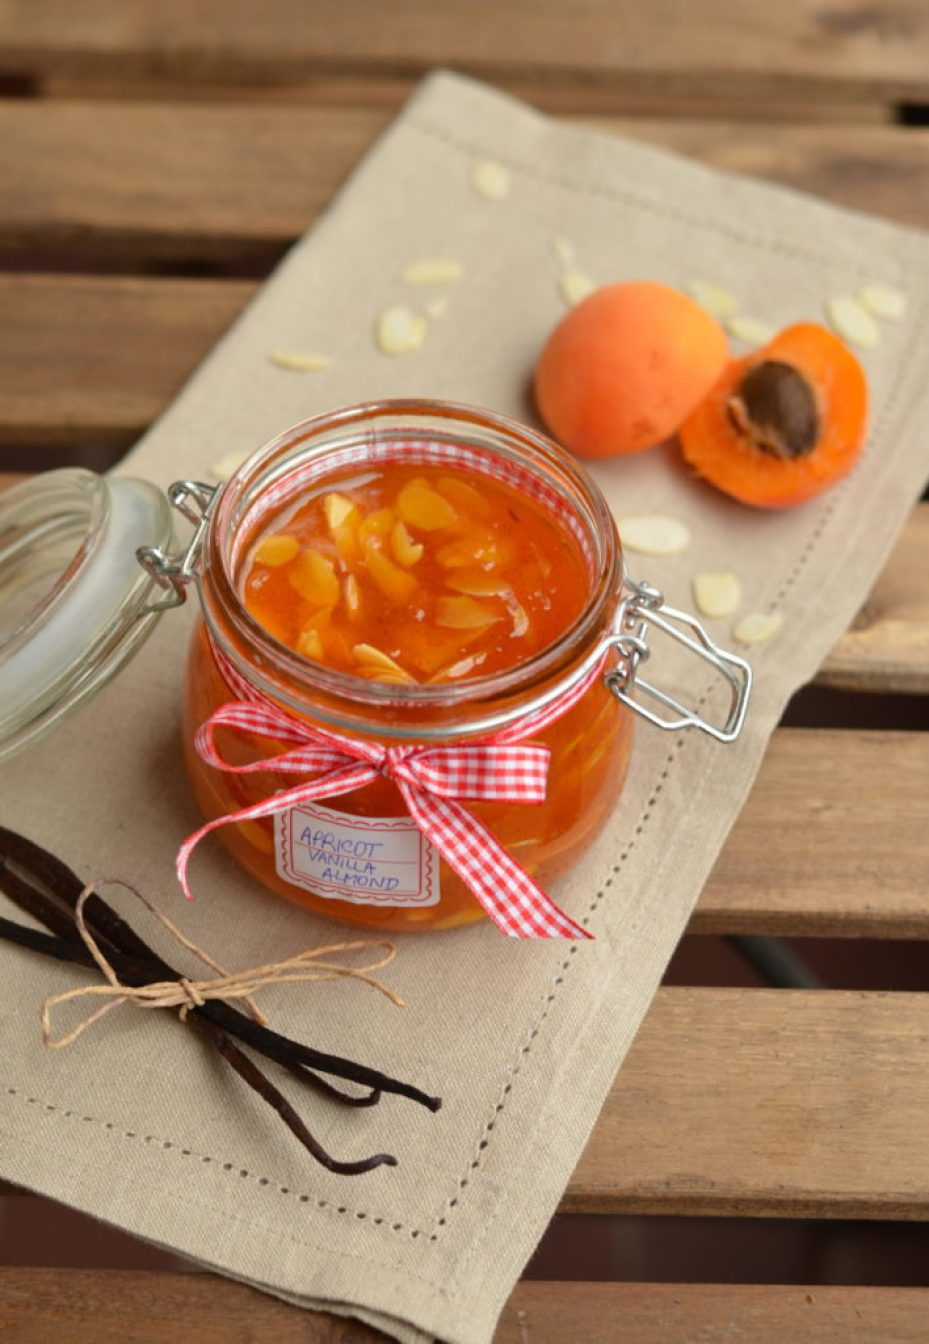 Vanilla and crispy almond slices bring the apricot jam into another level and once you try this gourmet jam, you may say that it's the best one ever!